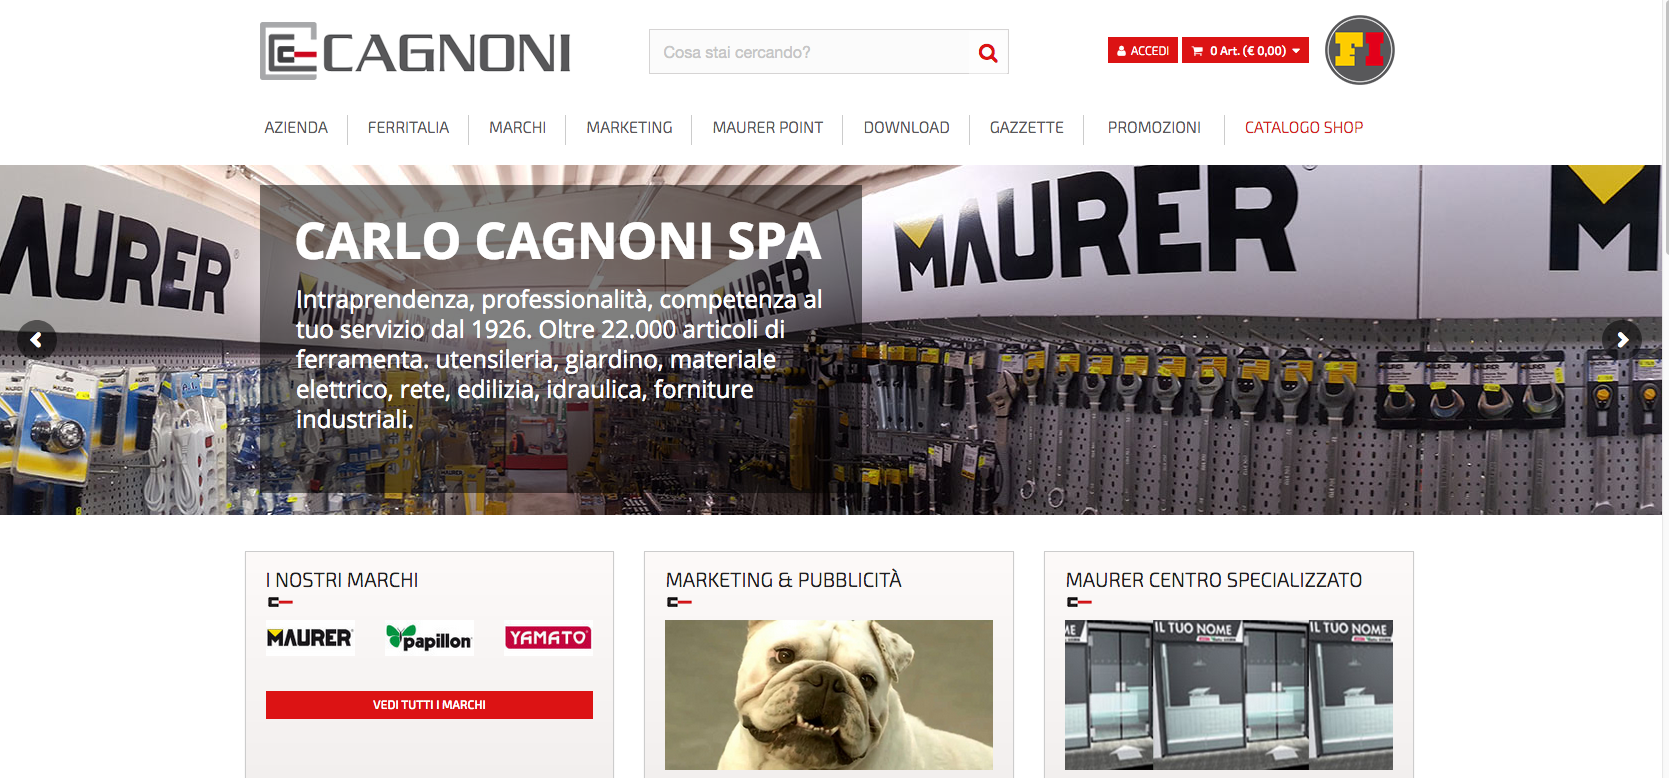 Cagnoni.it - Ecommerce per la rivendita di ferramenta